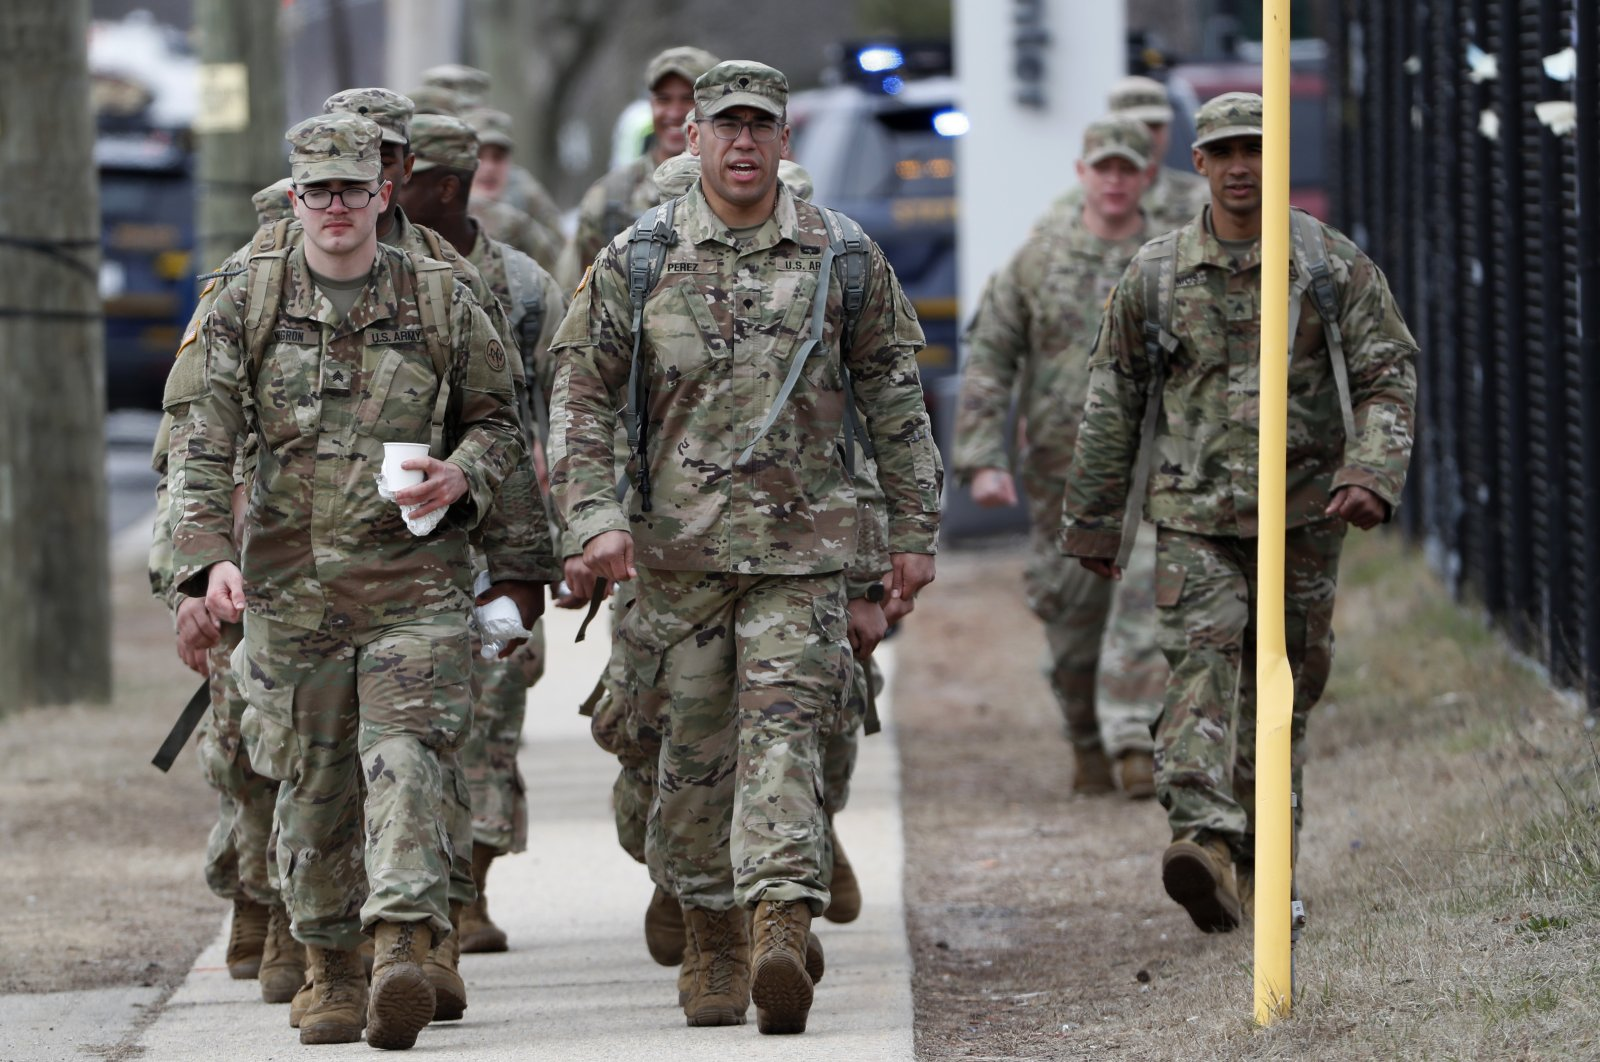 National Guard personnel march in formation as they leave duty after working Thursday, March 19, 2020, at a state-managed coronavirus drive-through testing site that just opened on Staten Island in New York. (AP Photo)